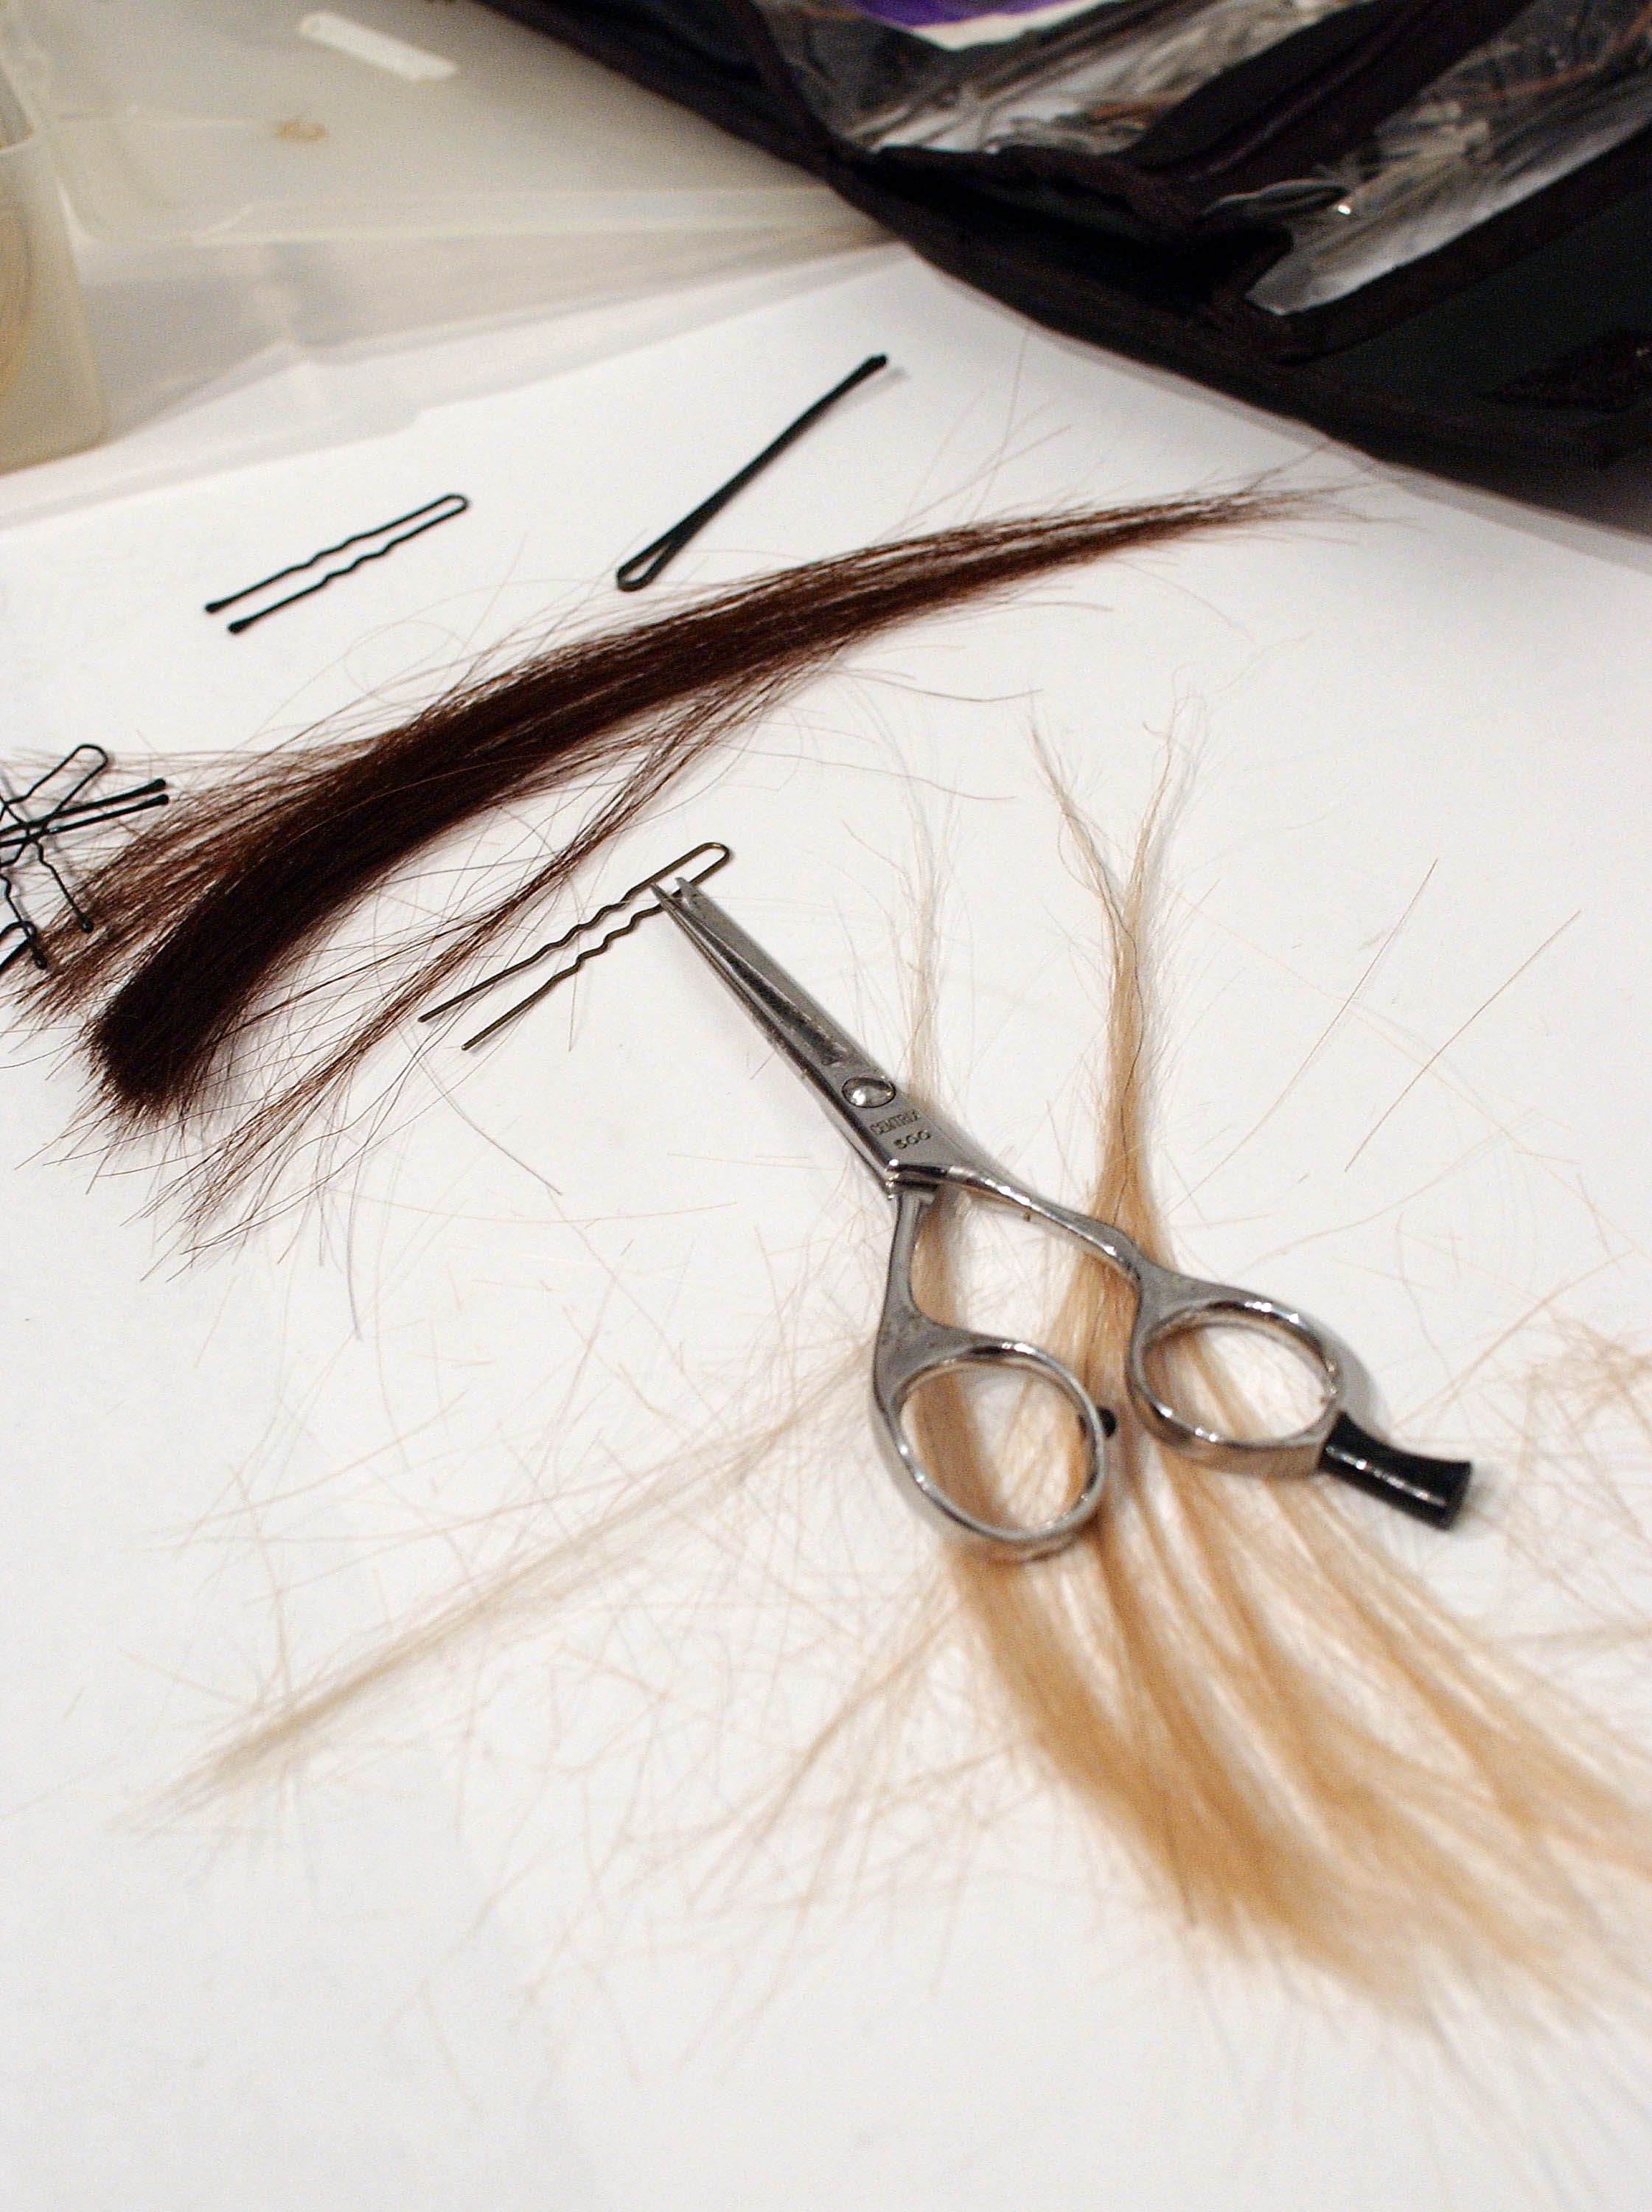 How To Cut Your Own Hair at Home - The Pro Guide